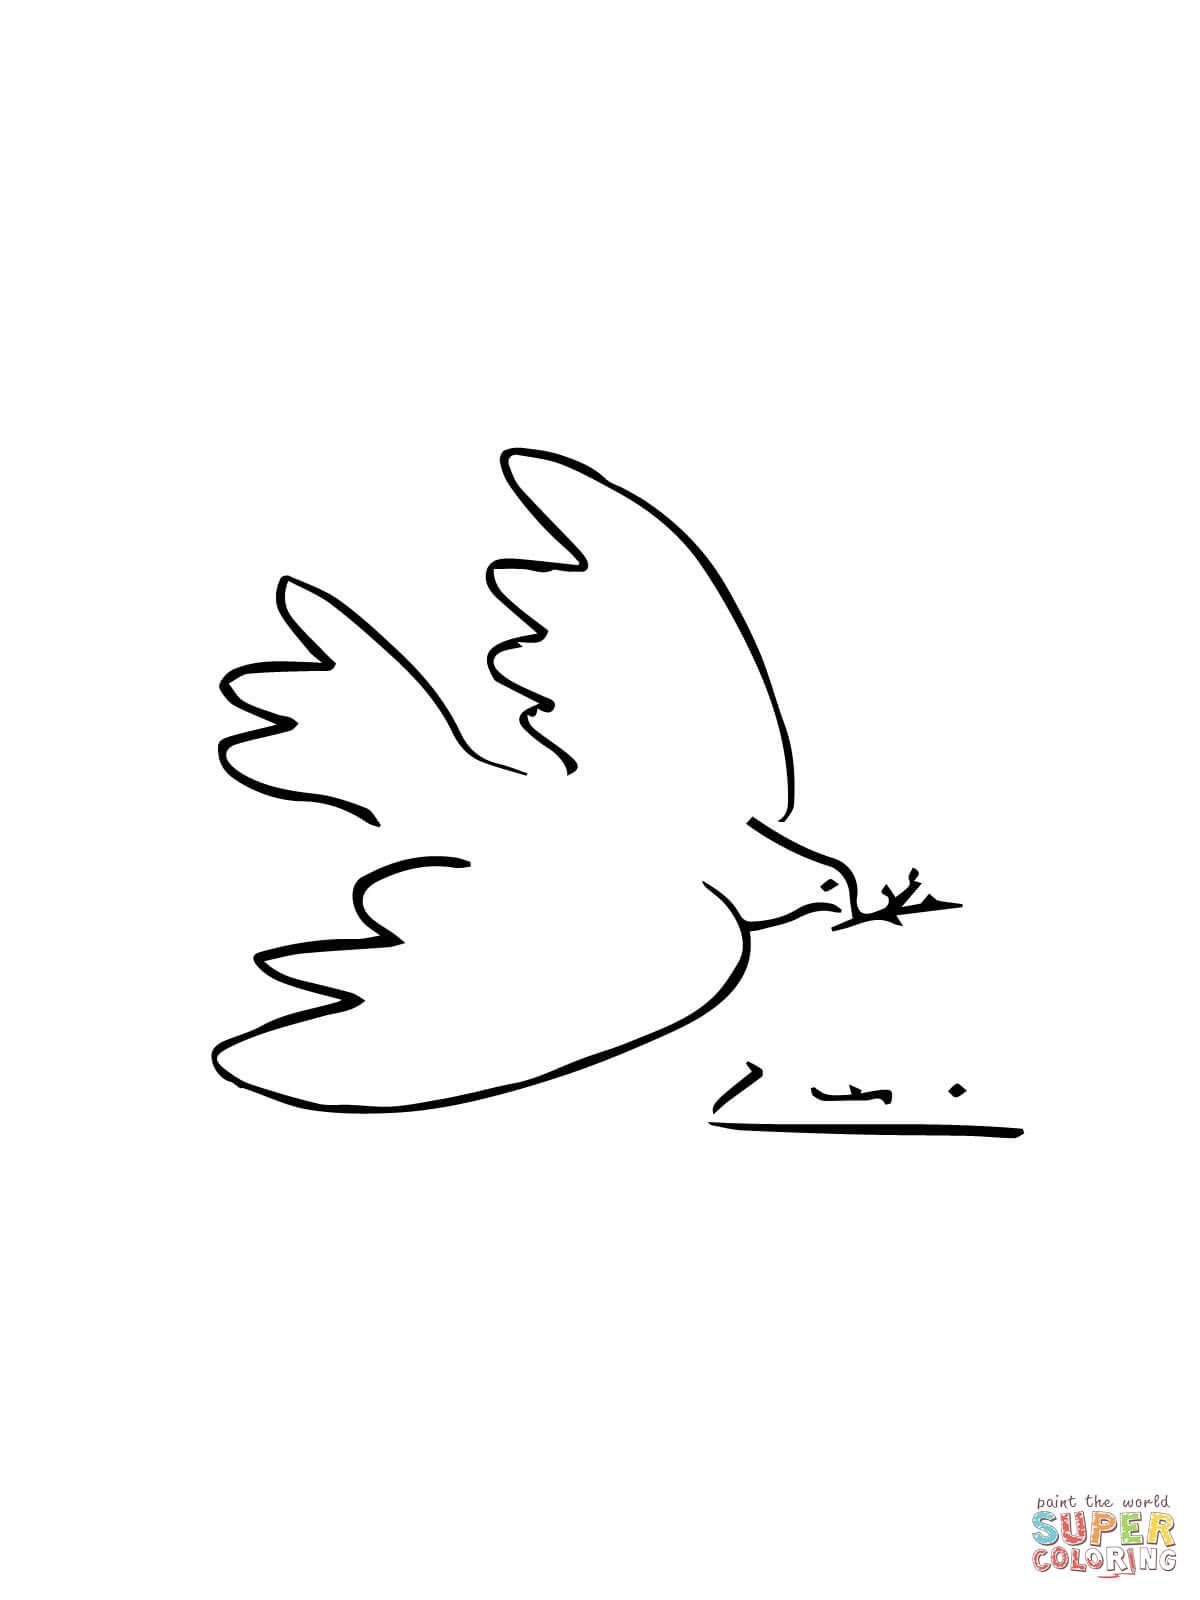 Peace Dove Coloring Page Free Printable Coloring Pages Picasso Coloring Picasso Picasso Dove Of Peace